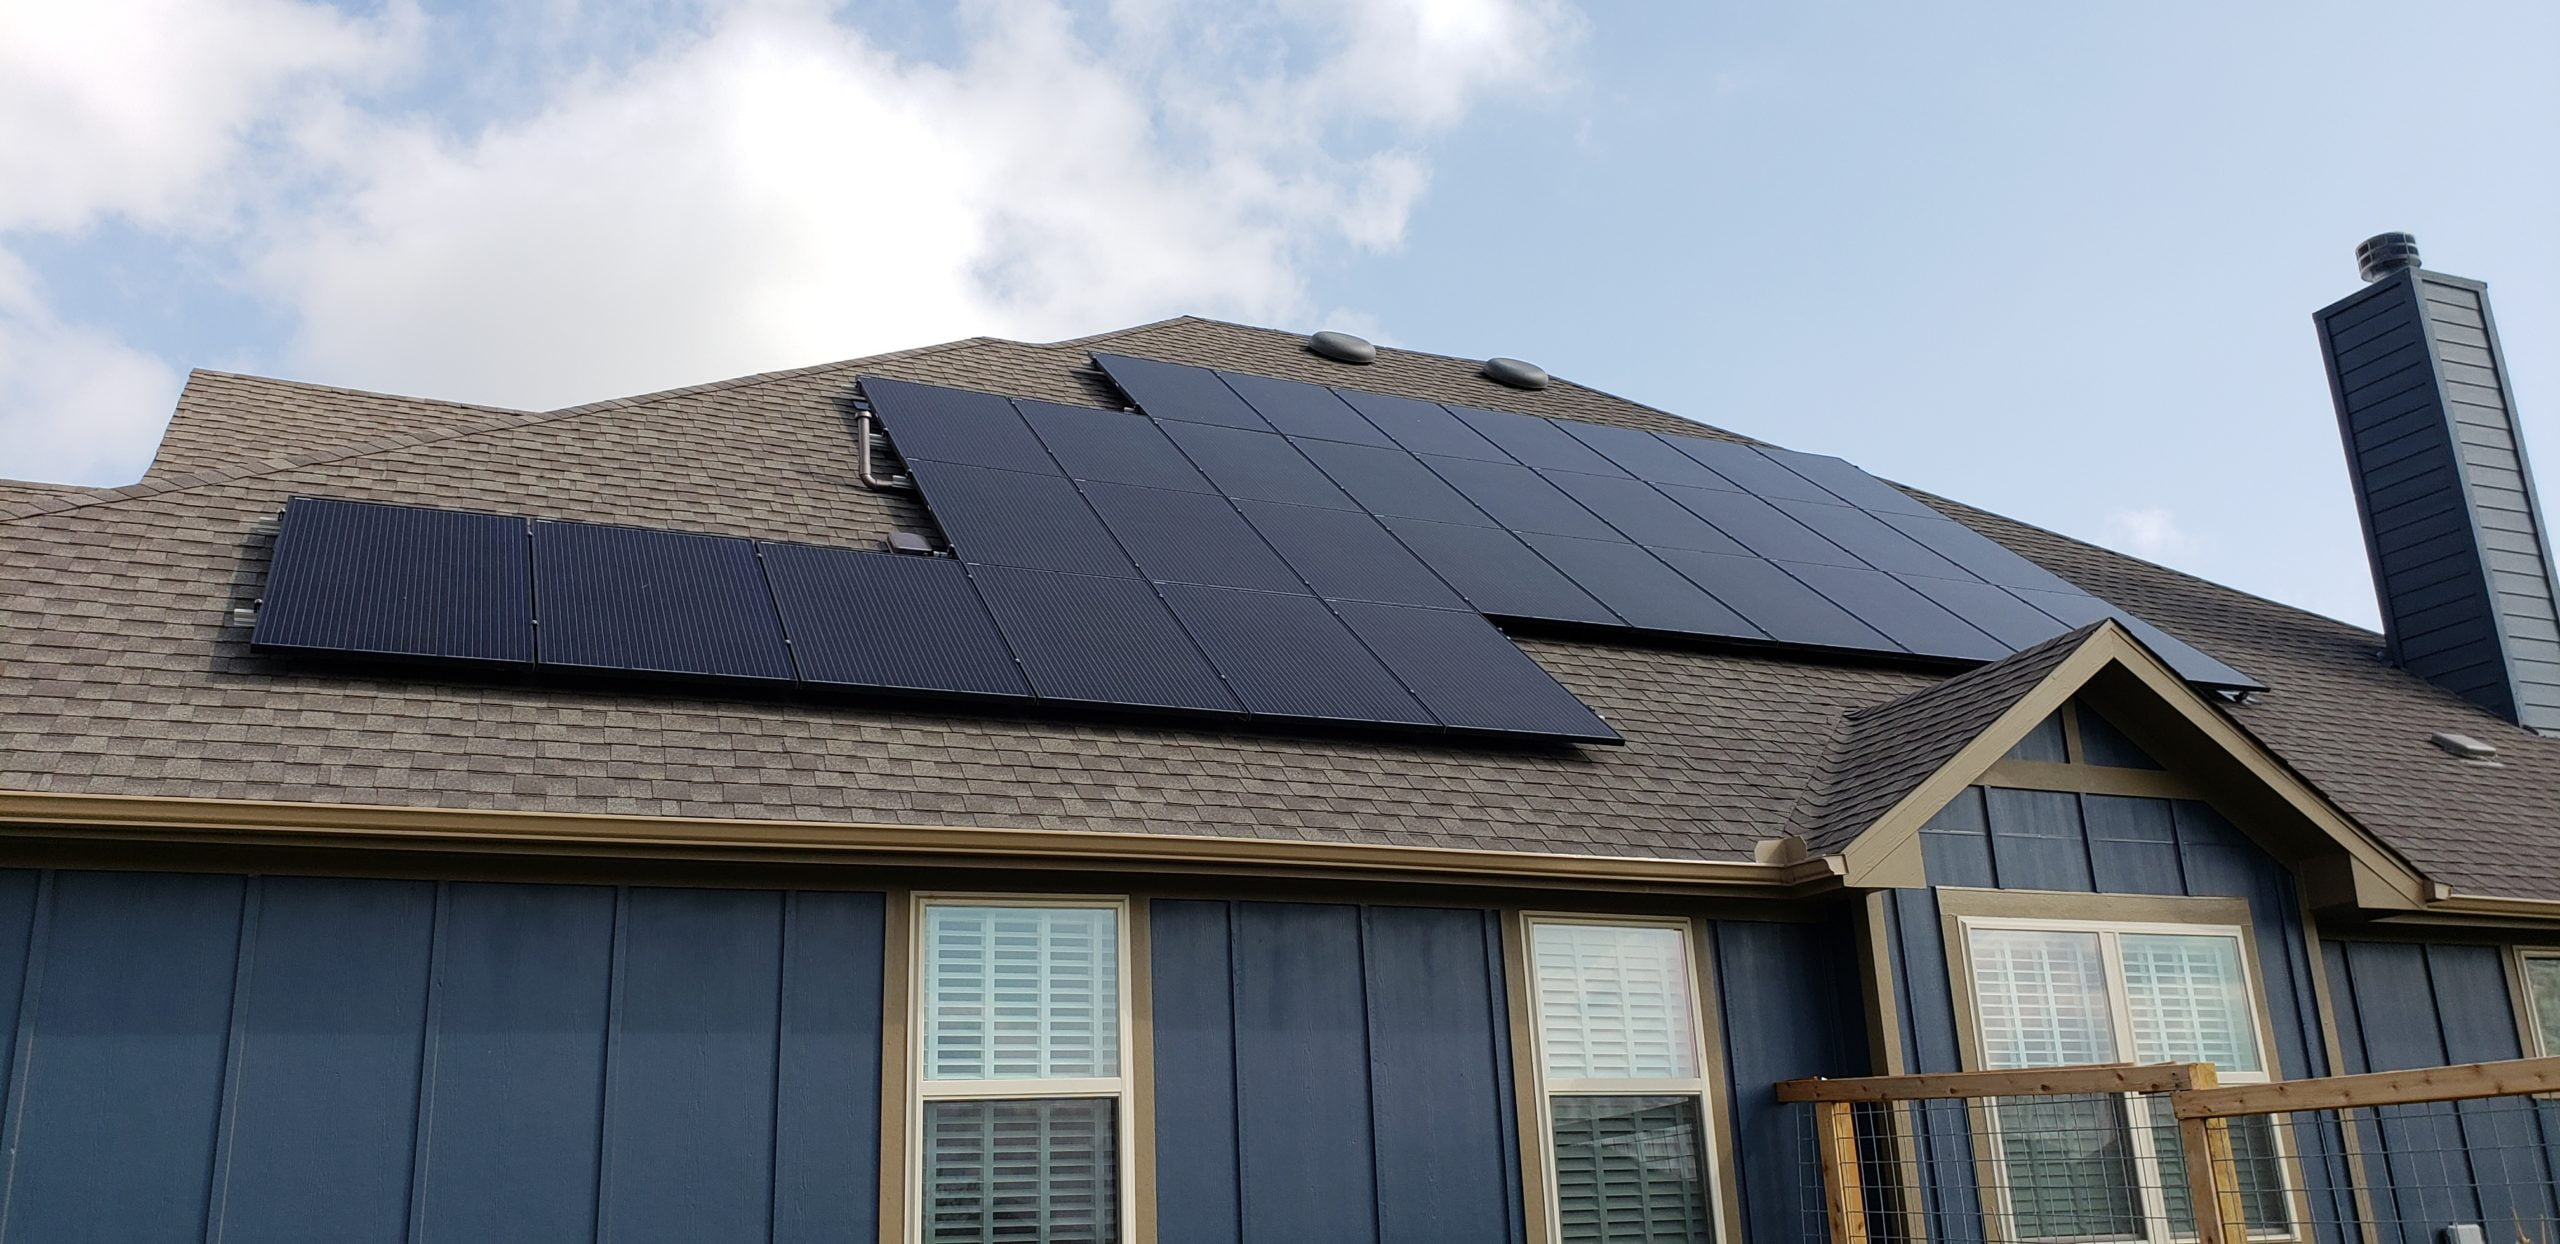 Longhorn Solar Chosen by Retail Energy Provider Griddy as One of Three Solar Panel Installation Partners